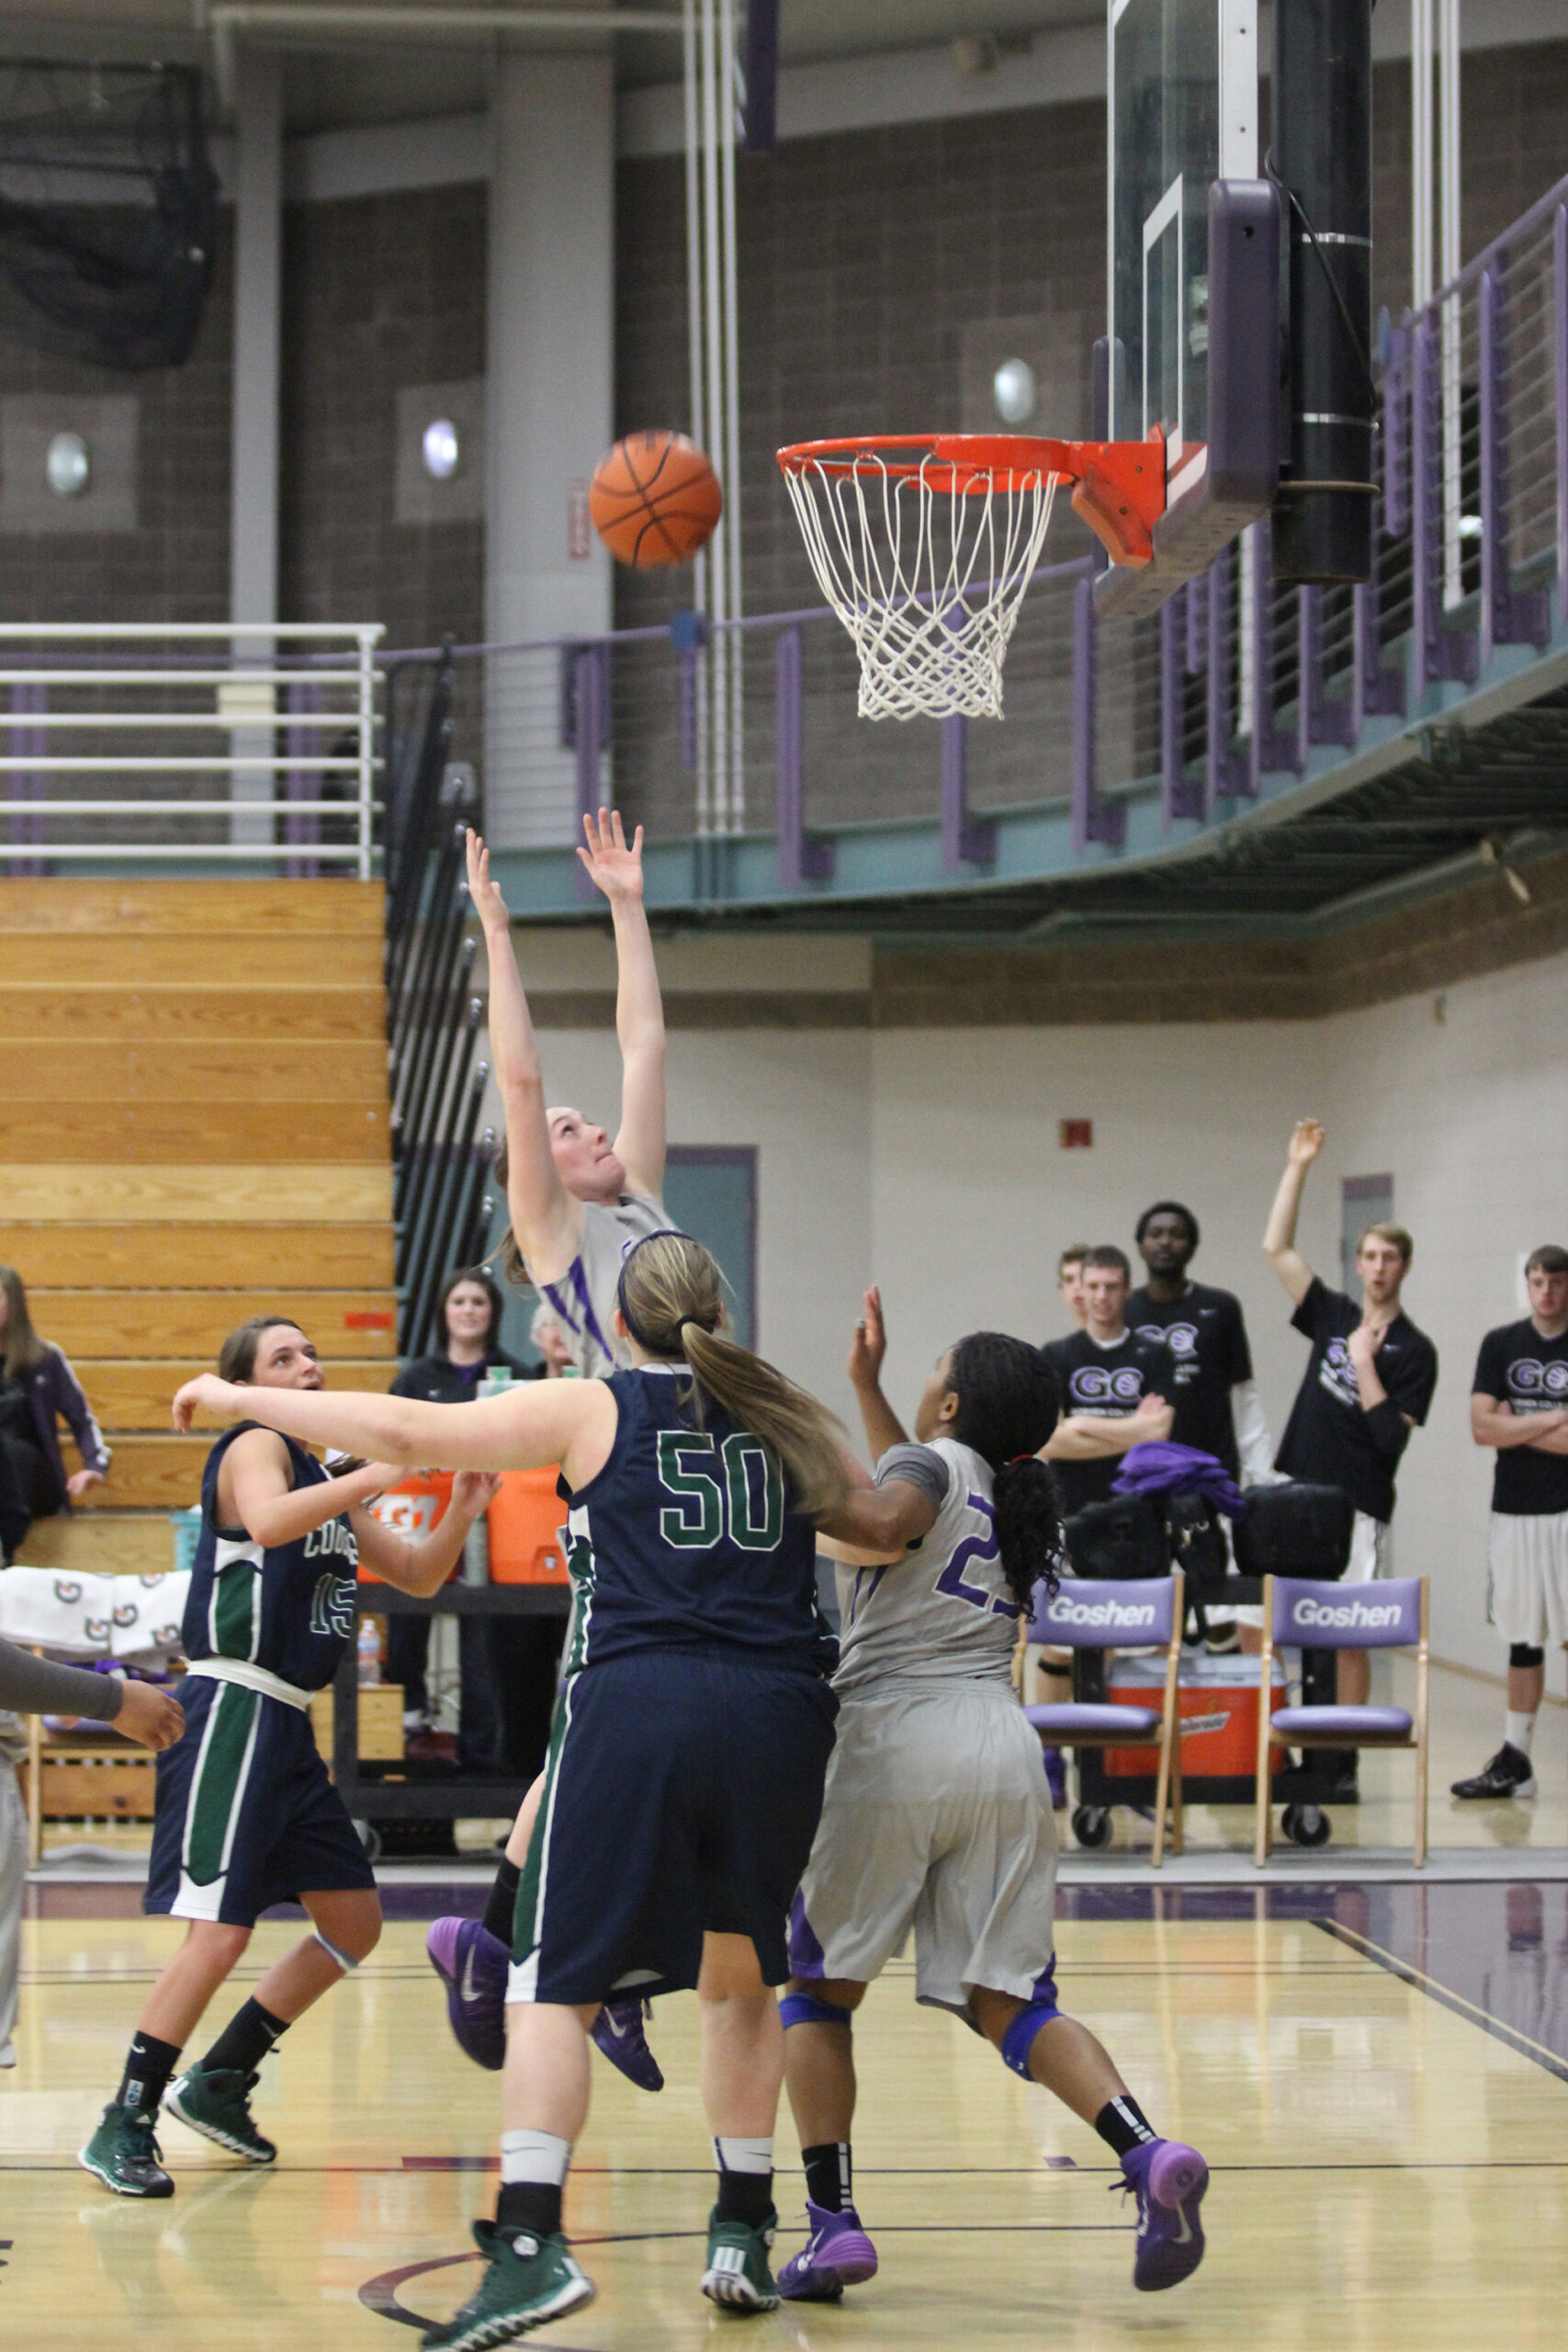 basketball players fight for rebound